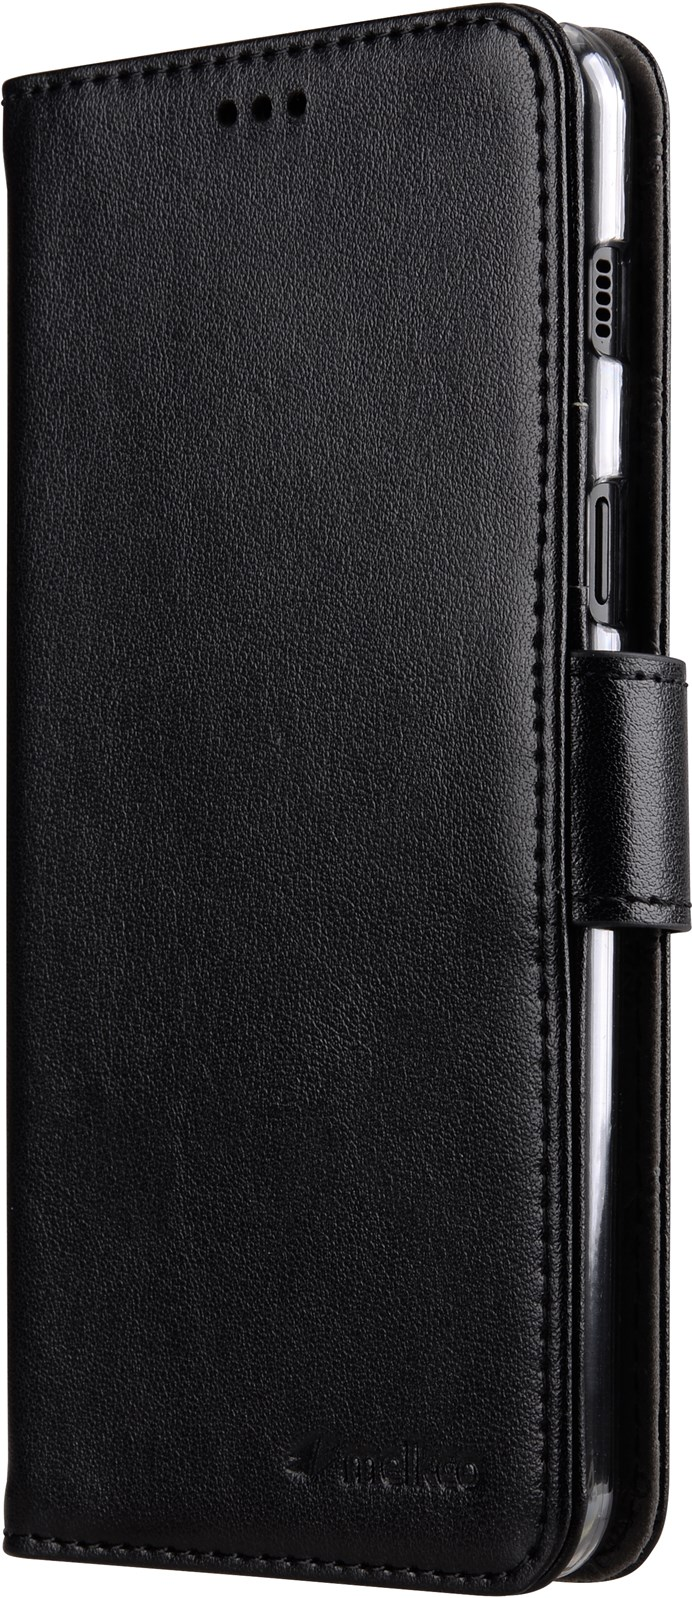 Melkco Walletcase Samsung Galaxy J6 (2018) Black